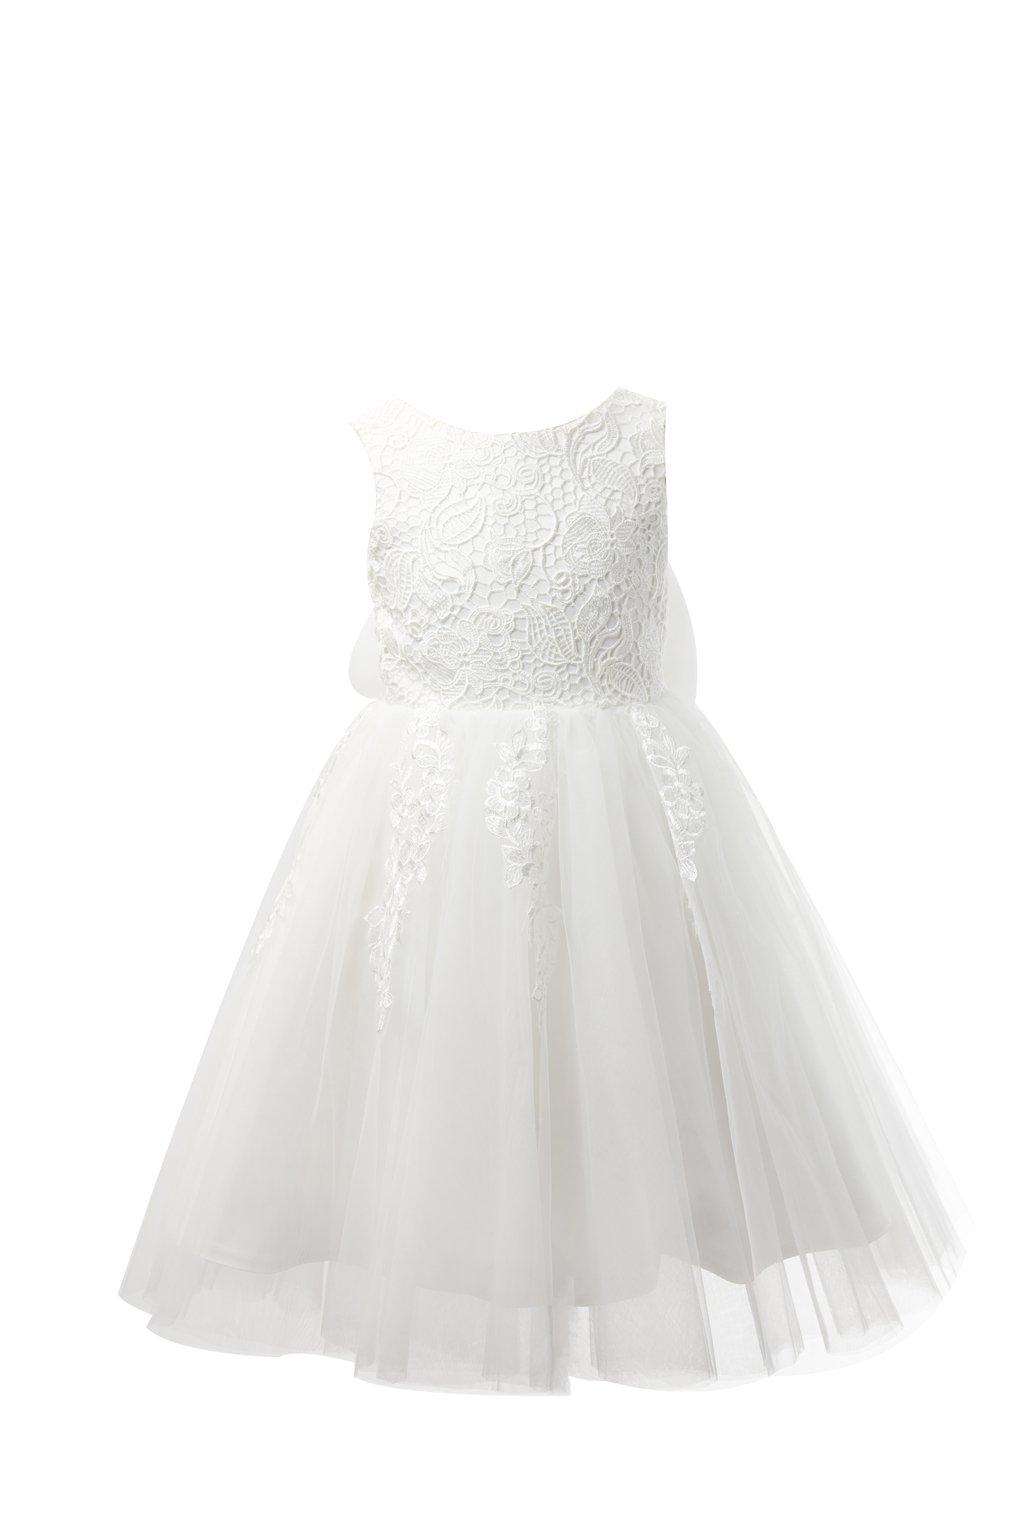 Miama Ivory Lace Tulle Wedding Flower Girl Dress Junior Bridesmaid Dress